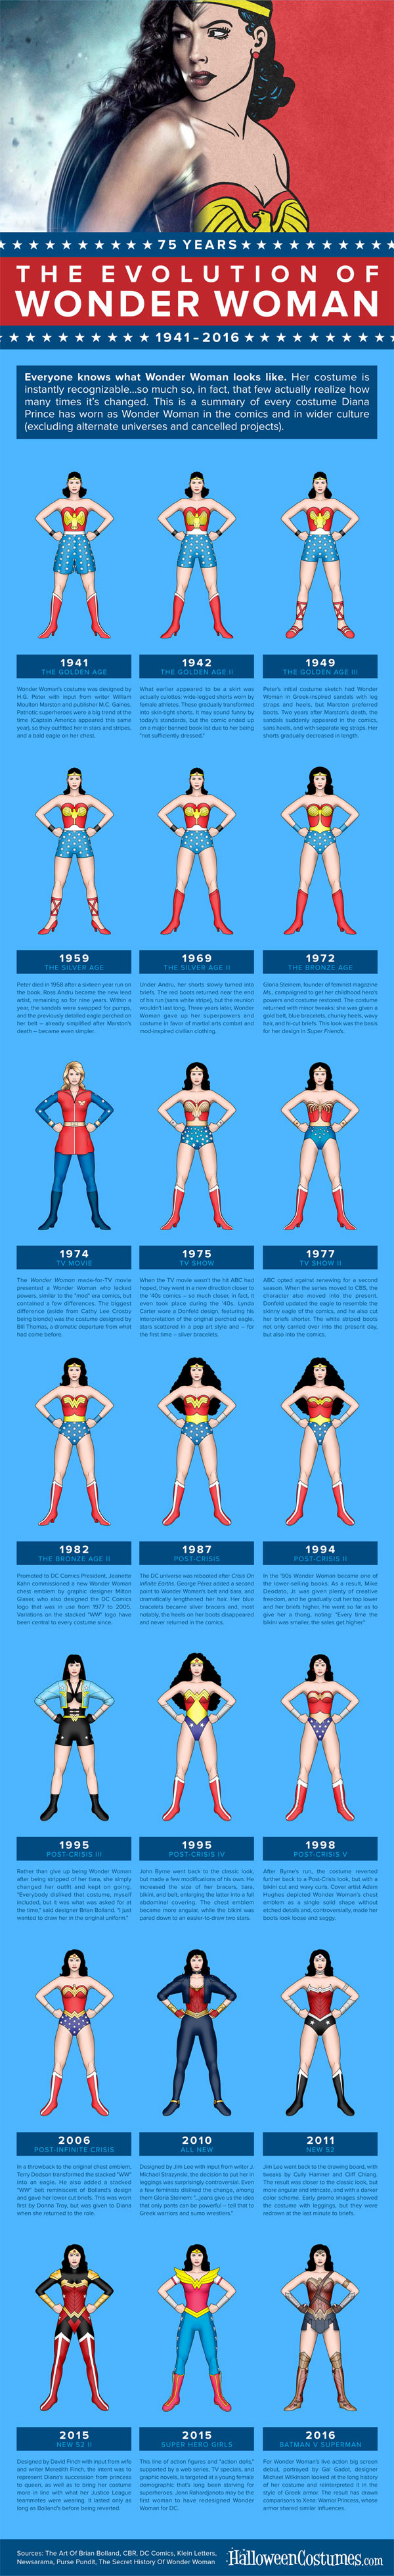 Sure, we all know what Wonder Woman looks like, but did you know that her costume changed quite a lot since the characters first appeared in All Star Comics #8